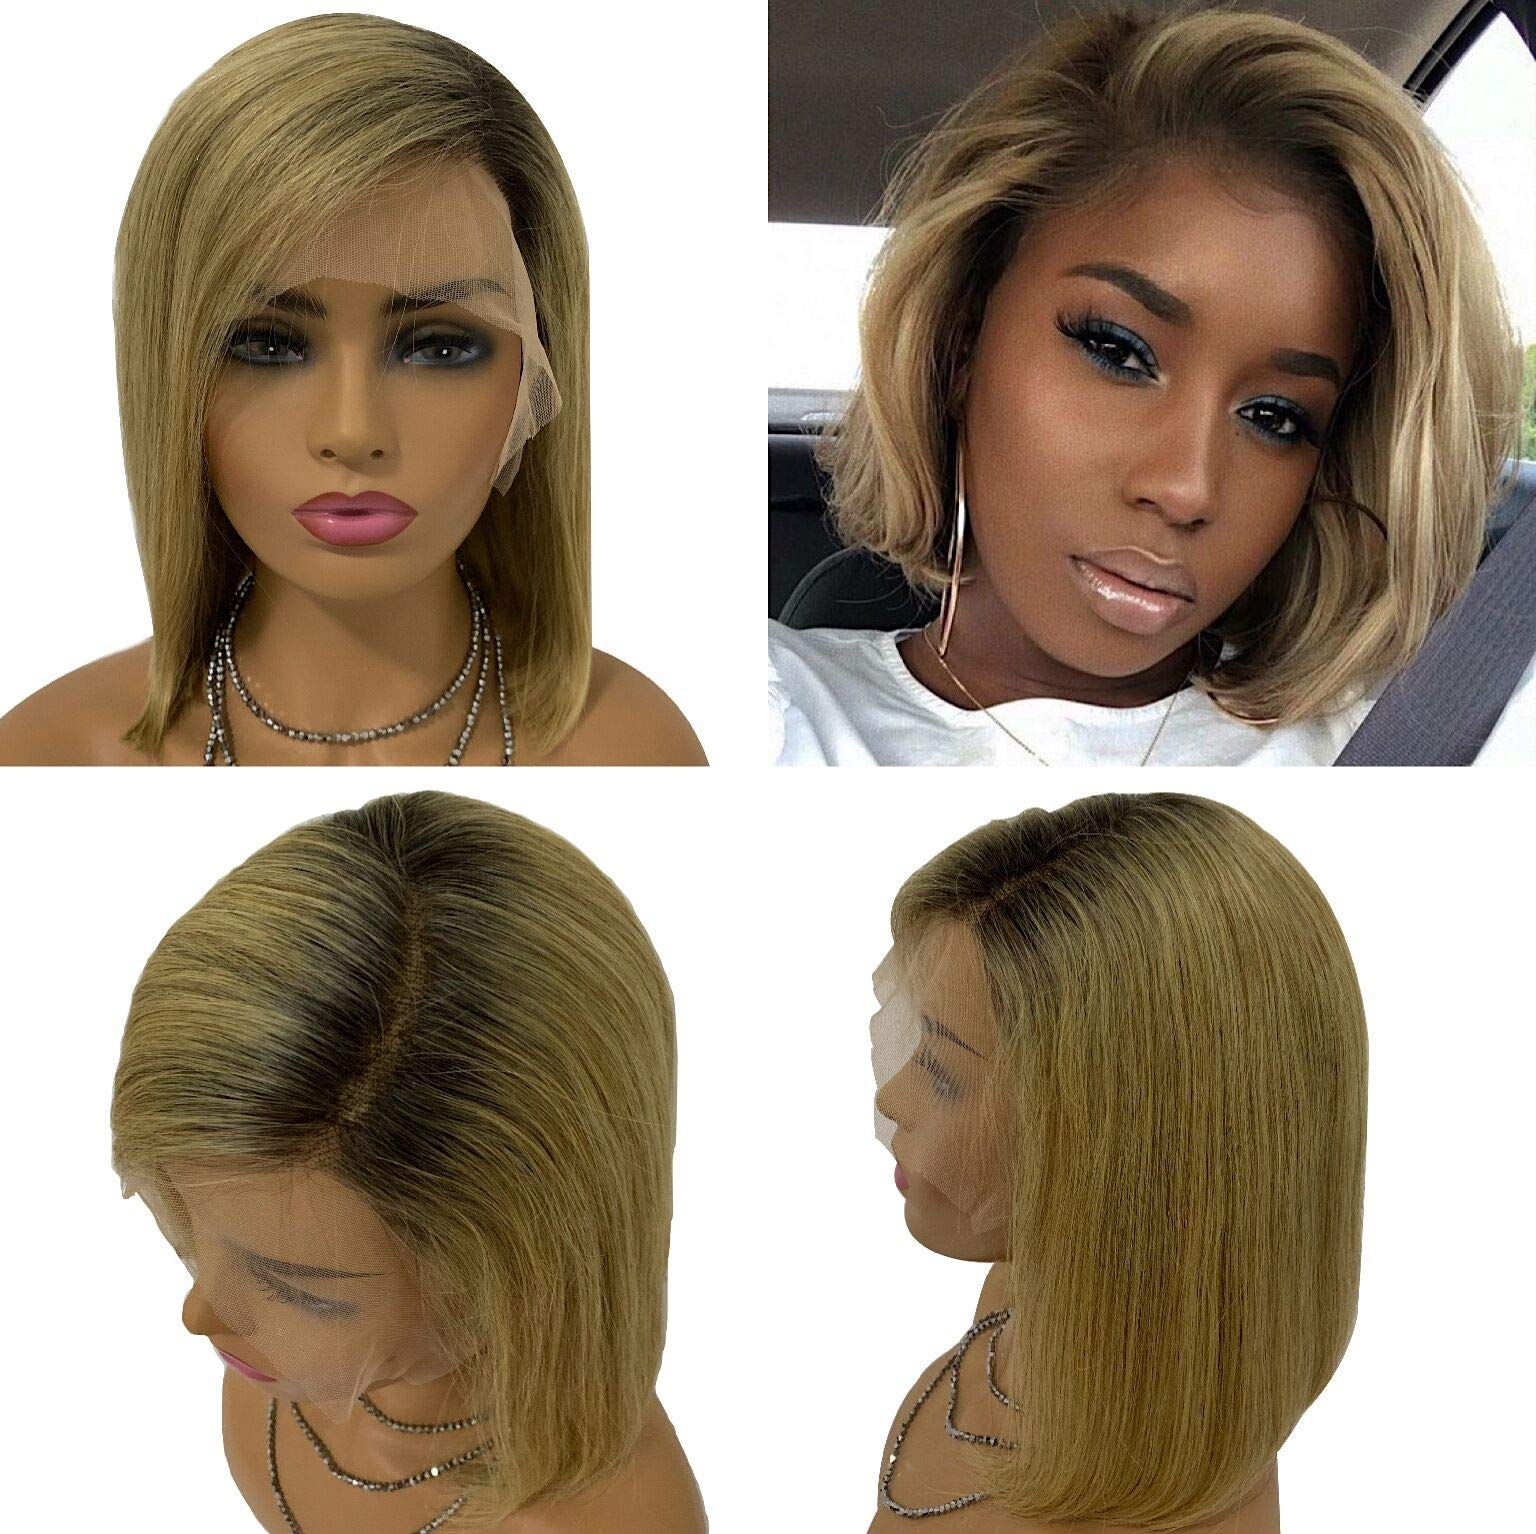 Long Bob Lace Front Wigs 13x6 Strawberry Blonde Dark Roots Quality Human Hair Wig Side Part Pre Plucked with Baby Hair Soft and Bouncy 14 inch 180% Density #1b/27 by Belaved